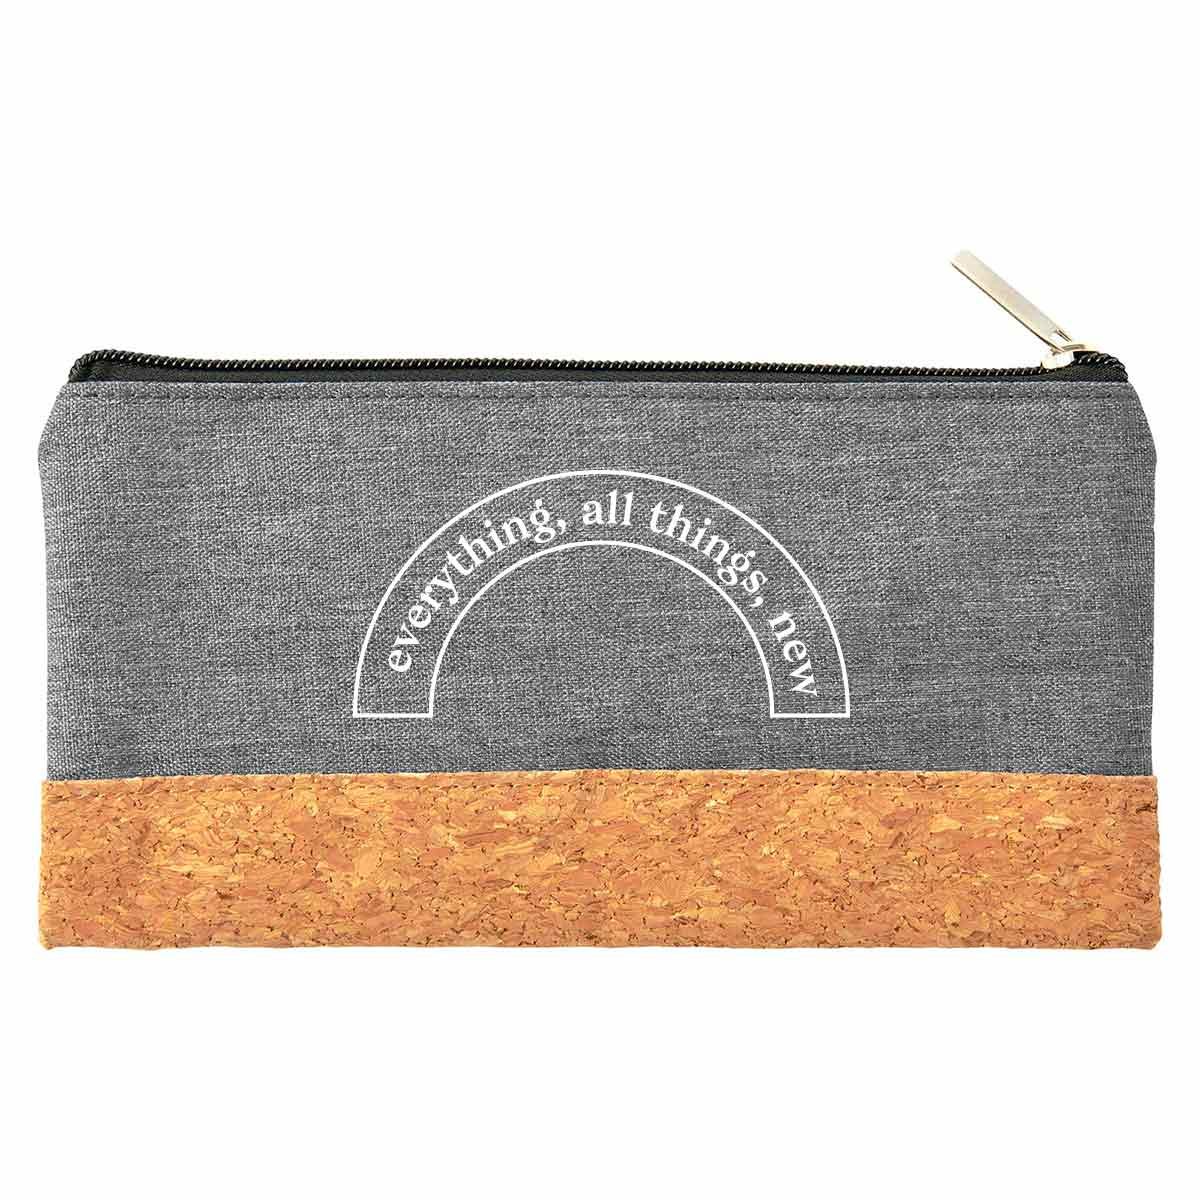 199957 heathered cork pouch one color imprint only